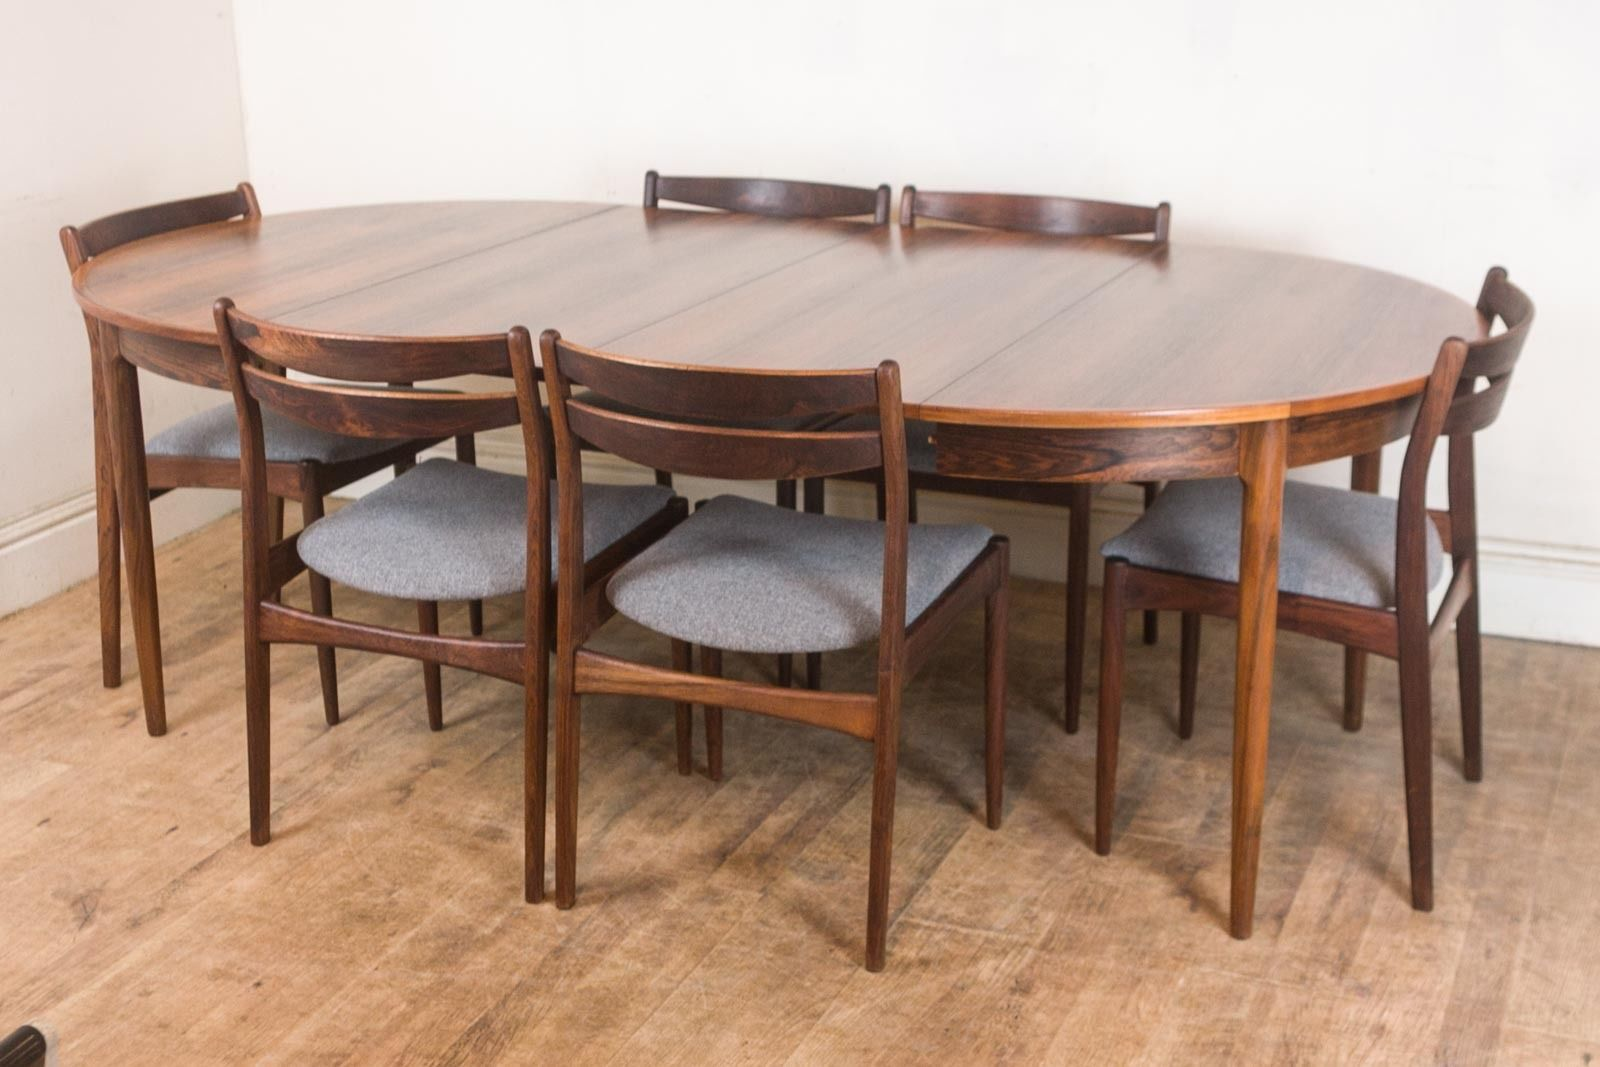 Vintage Retro Danish Rosewood Dining Table And 6 Chairs